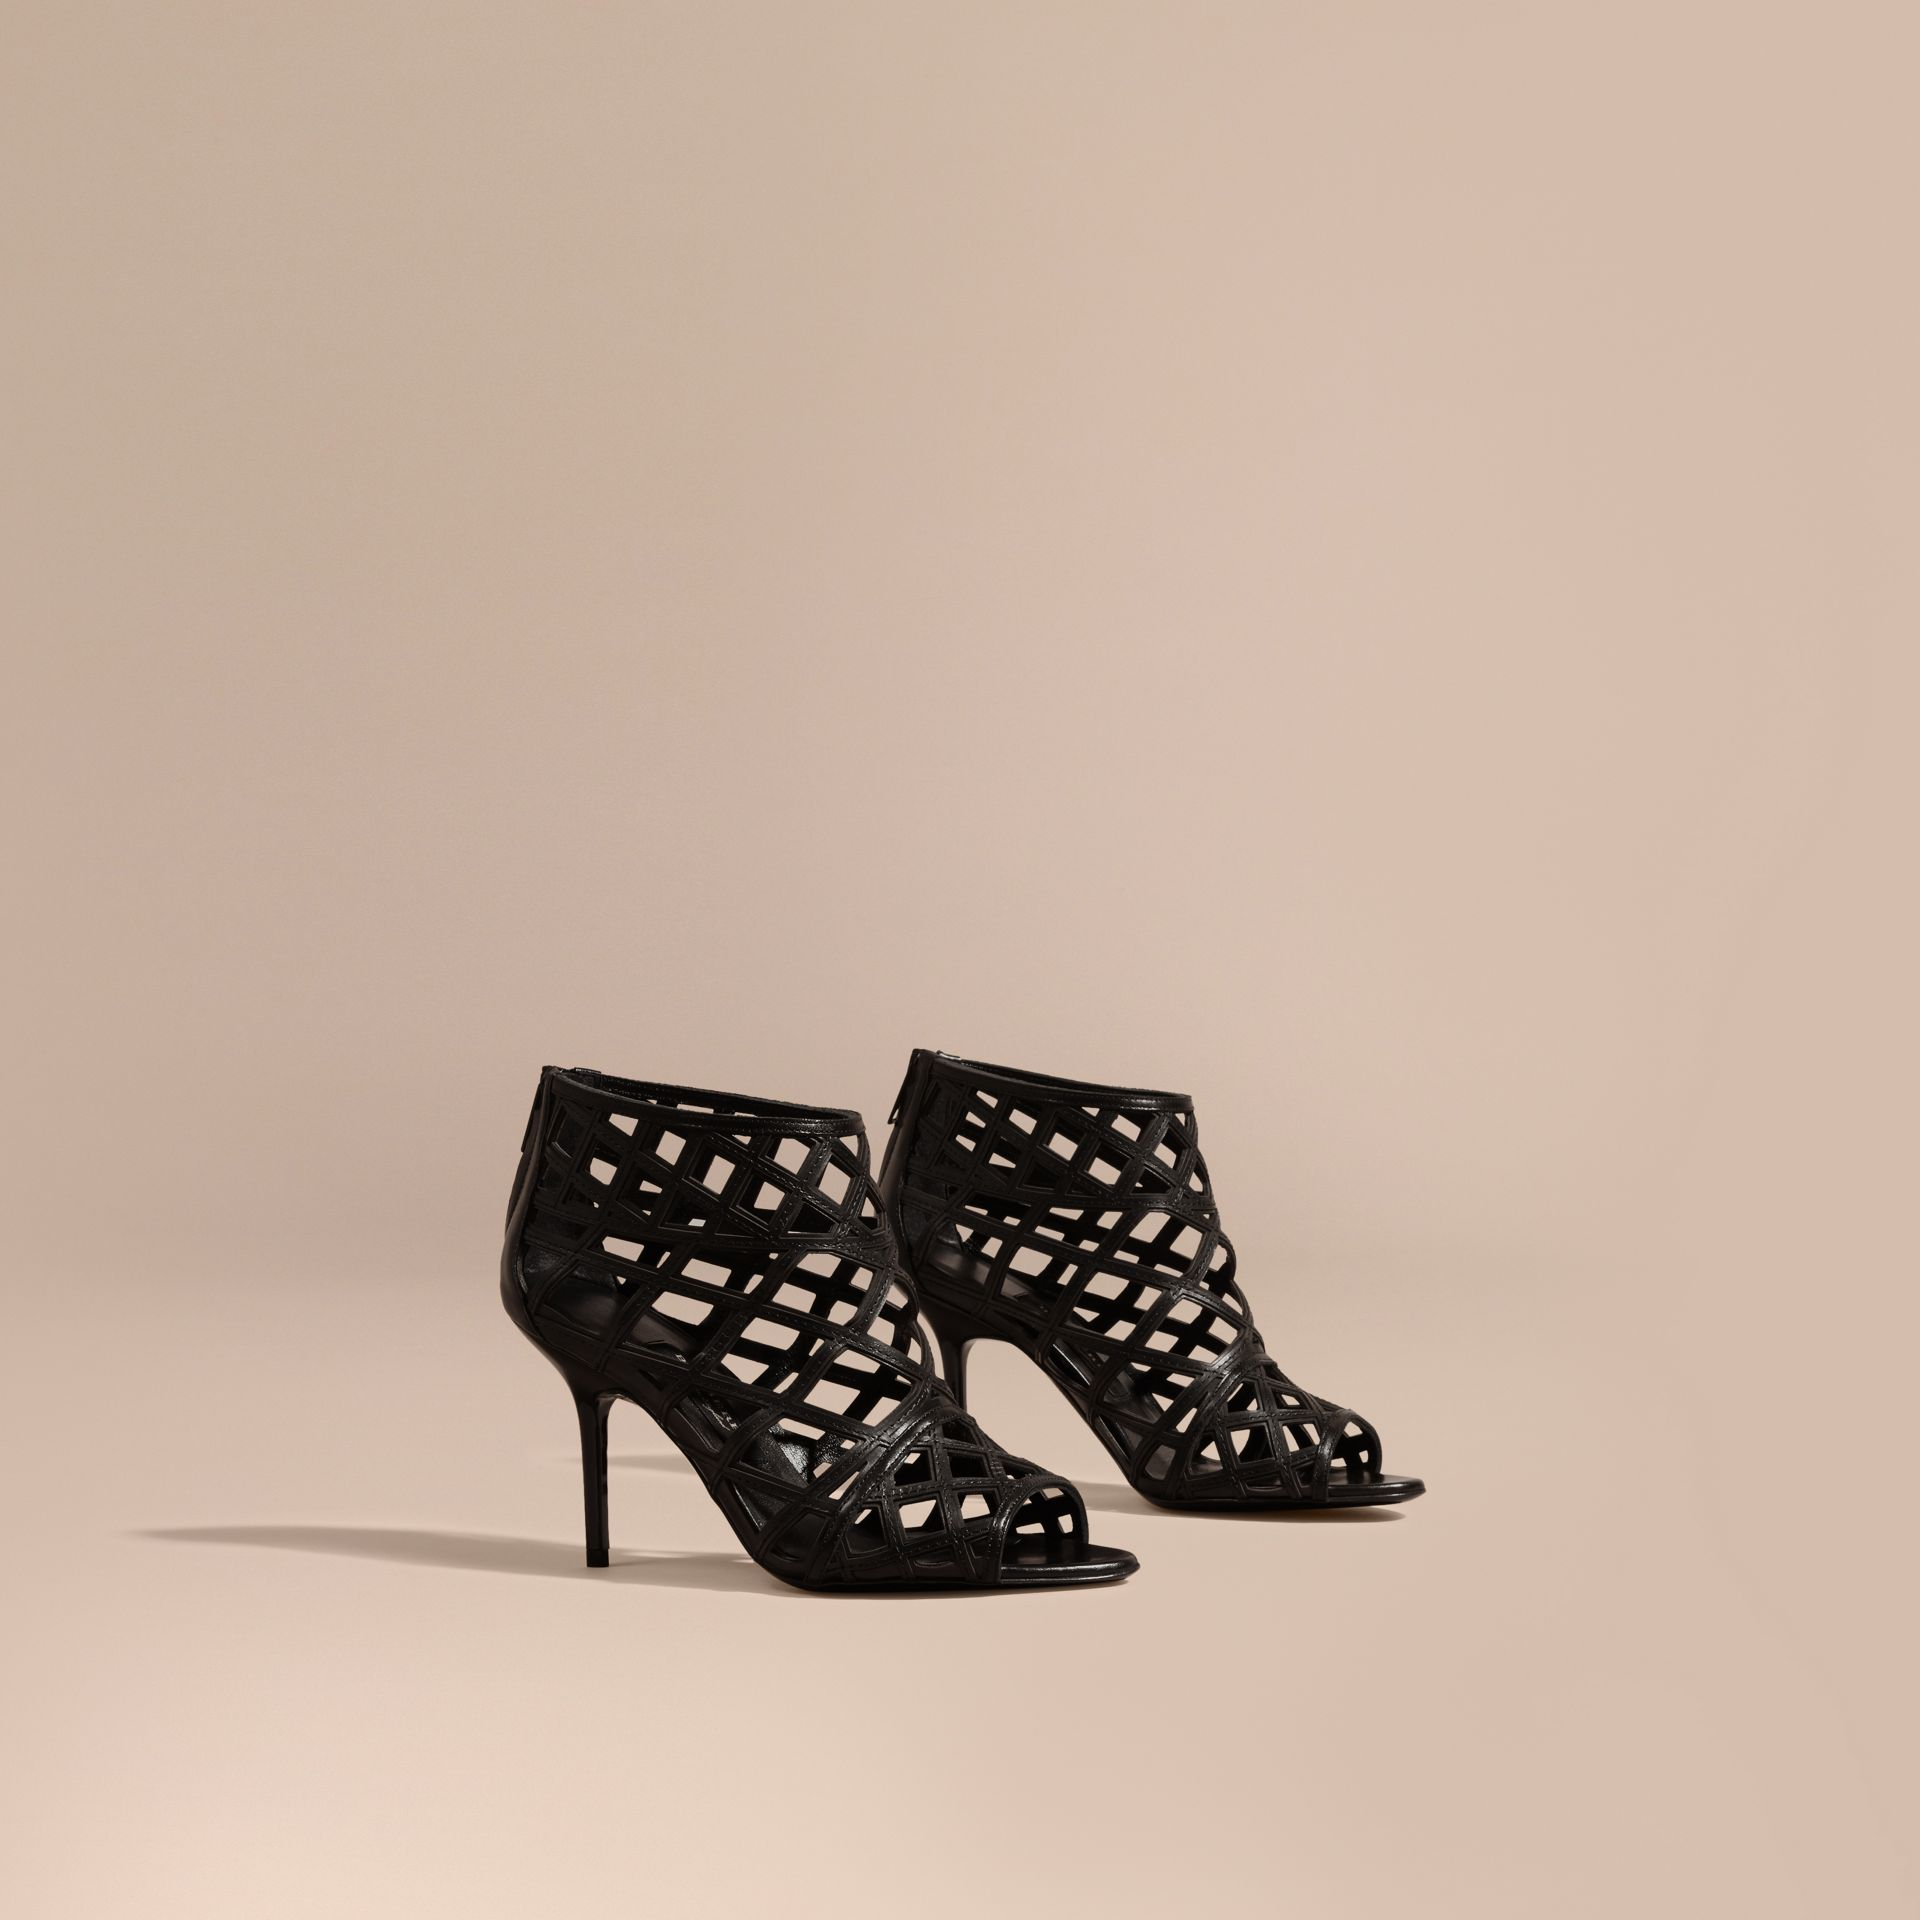 Black Cut-out Leather Ankle Boots Black - gallery image 1